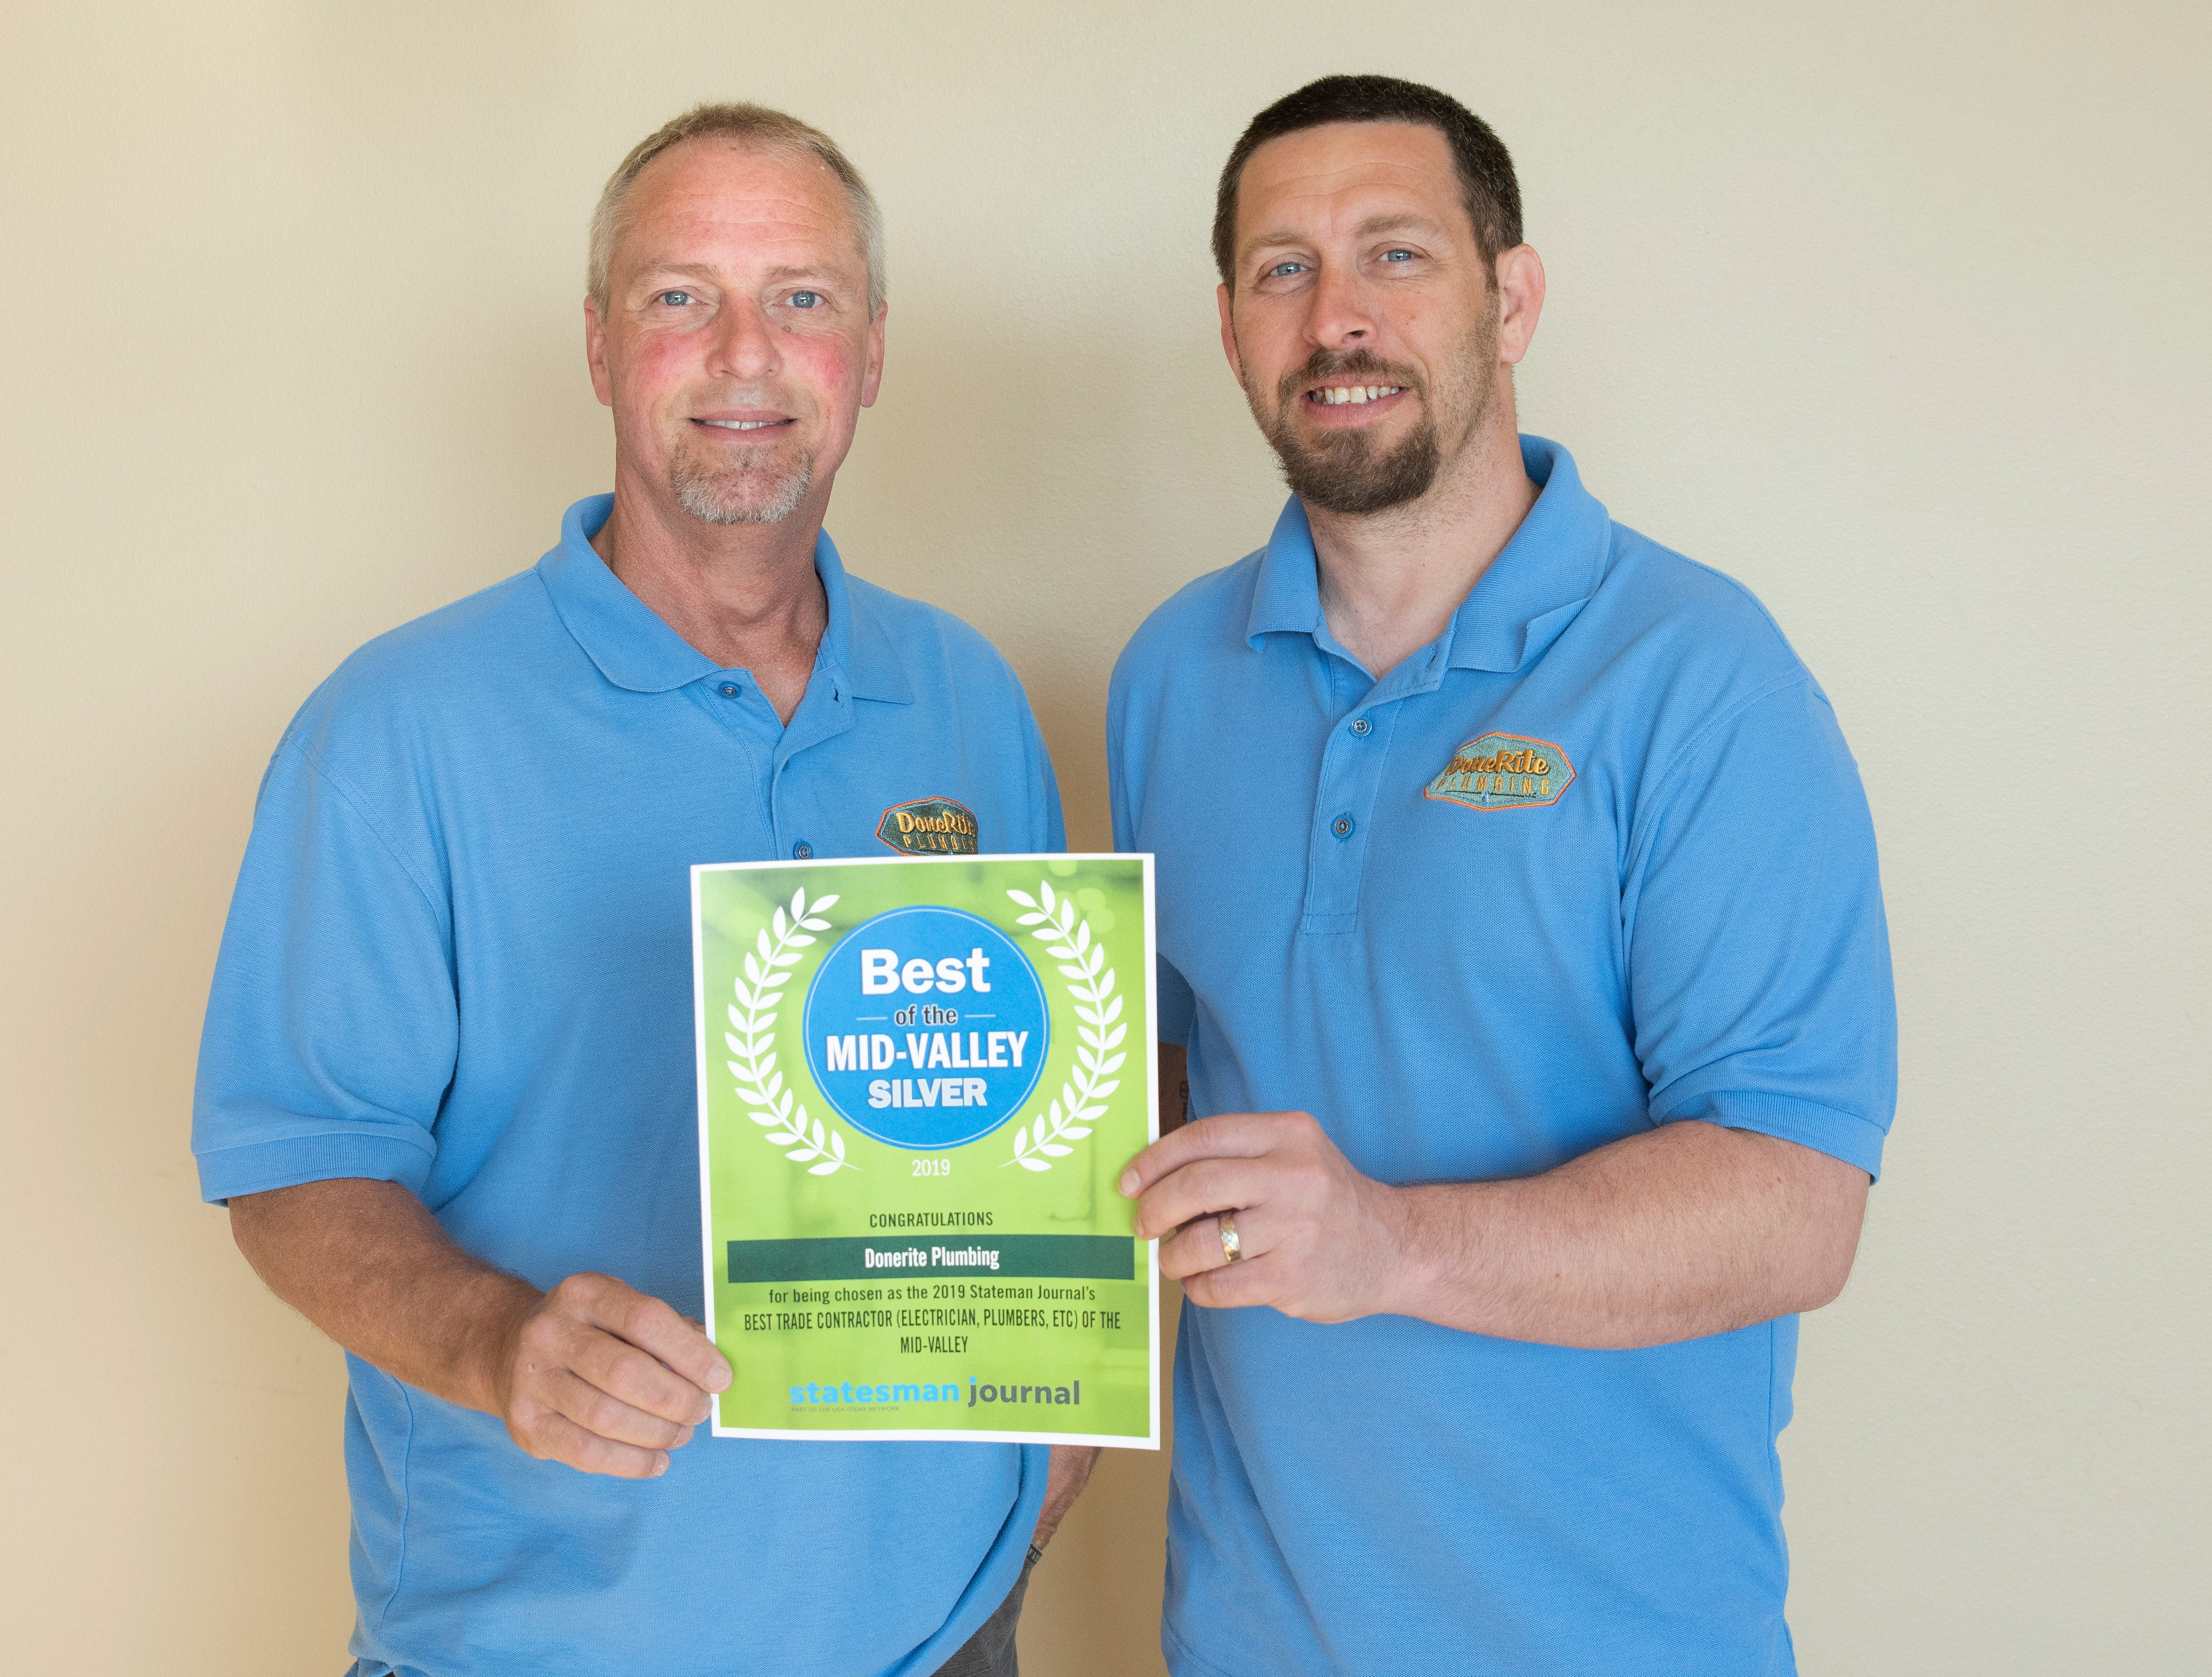 Donerite Plumbing won silver for Best Trade Contractor in the 2019 Best of the Mid-Valley.